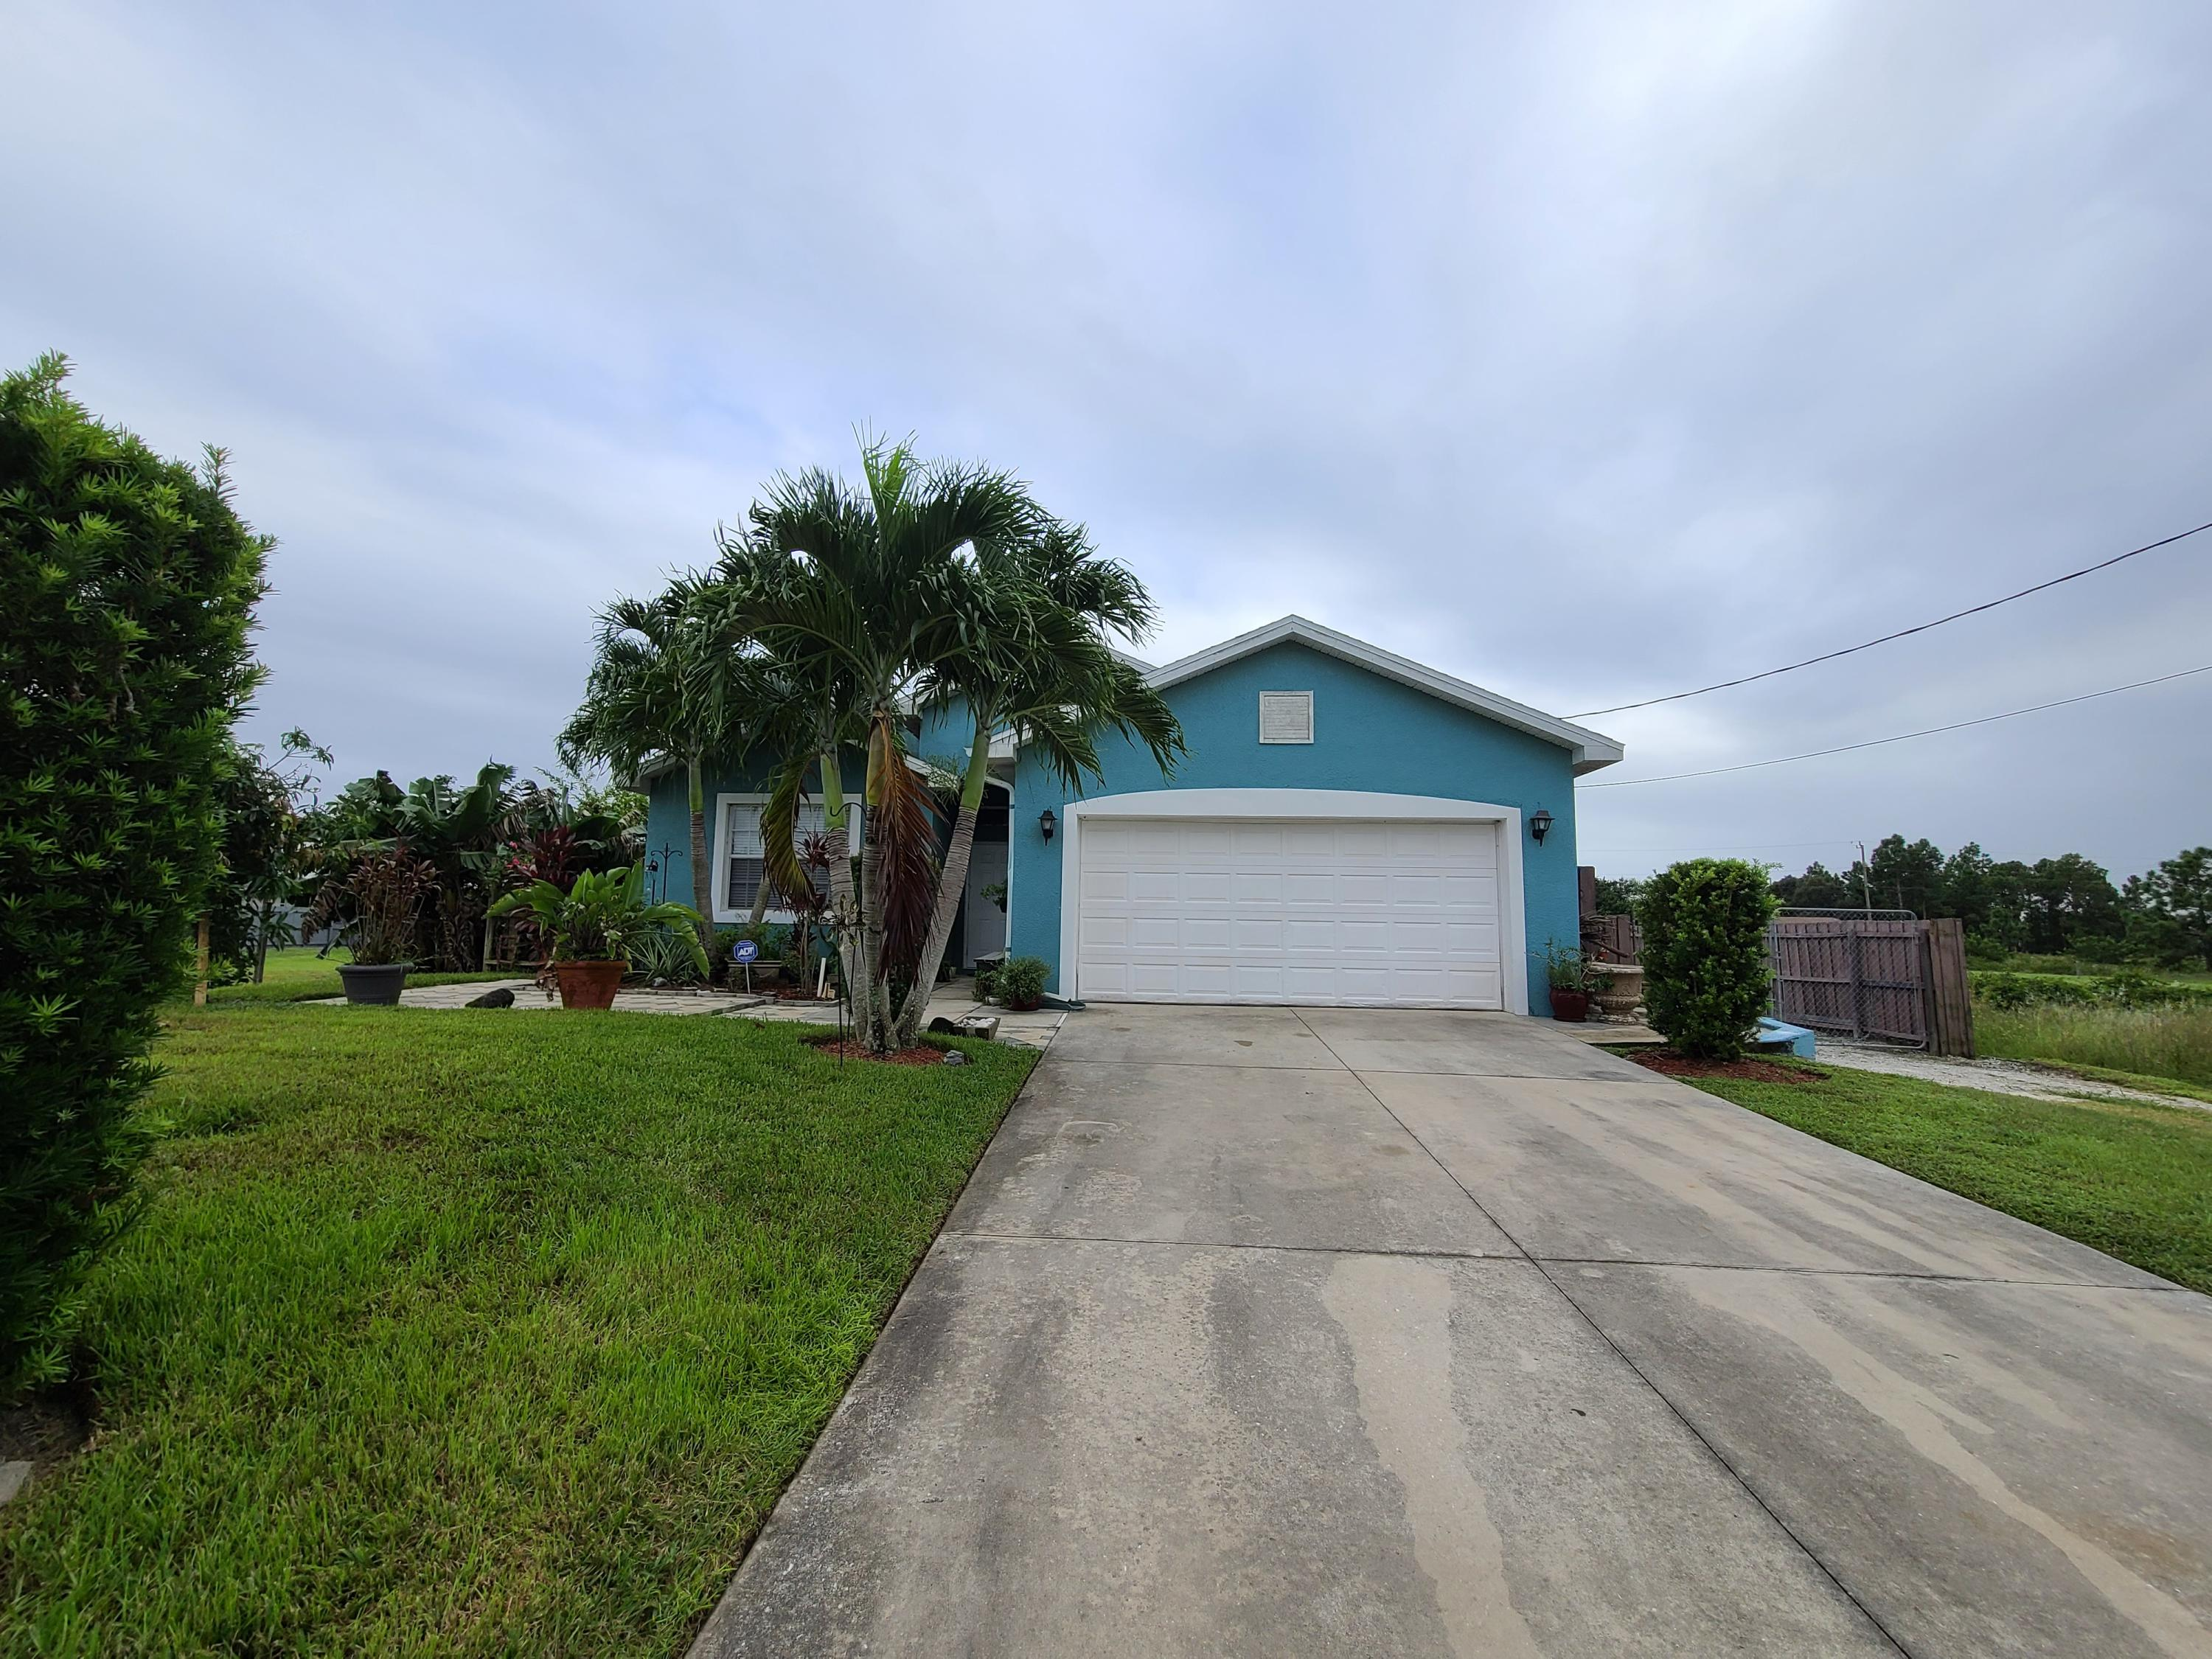 Home for sale in LEHIGH ACRES UNIT 2 Lehigh Acres Florida